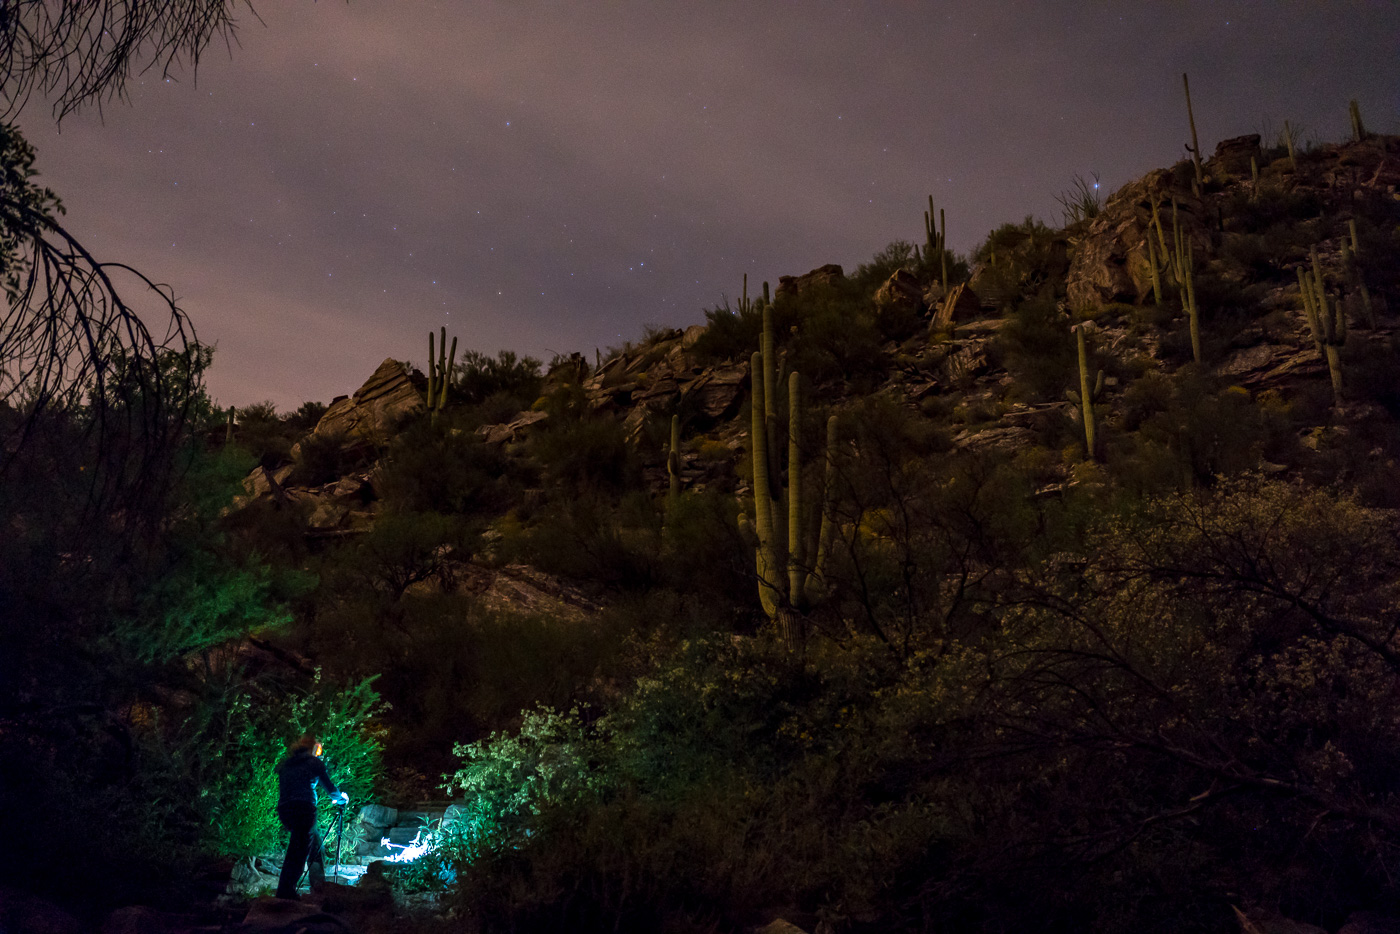 Capturing Images at night in Sabino Canyon. March 2017.